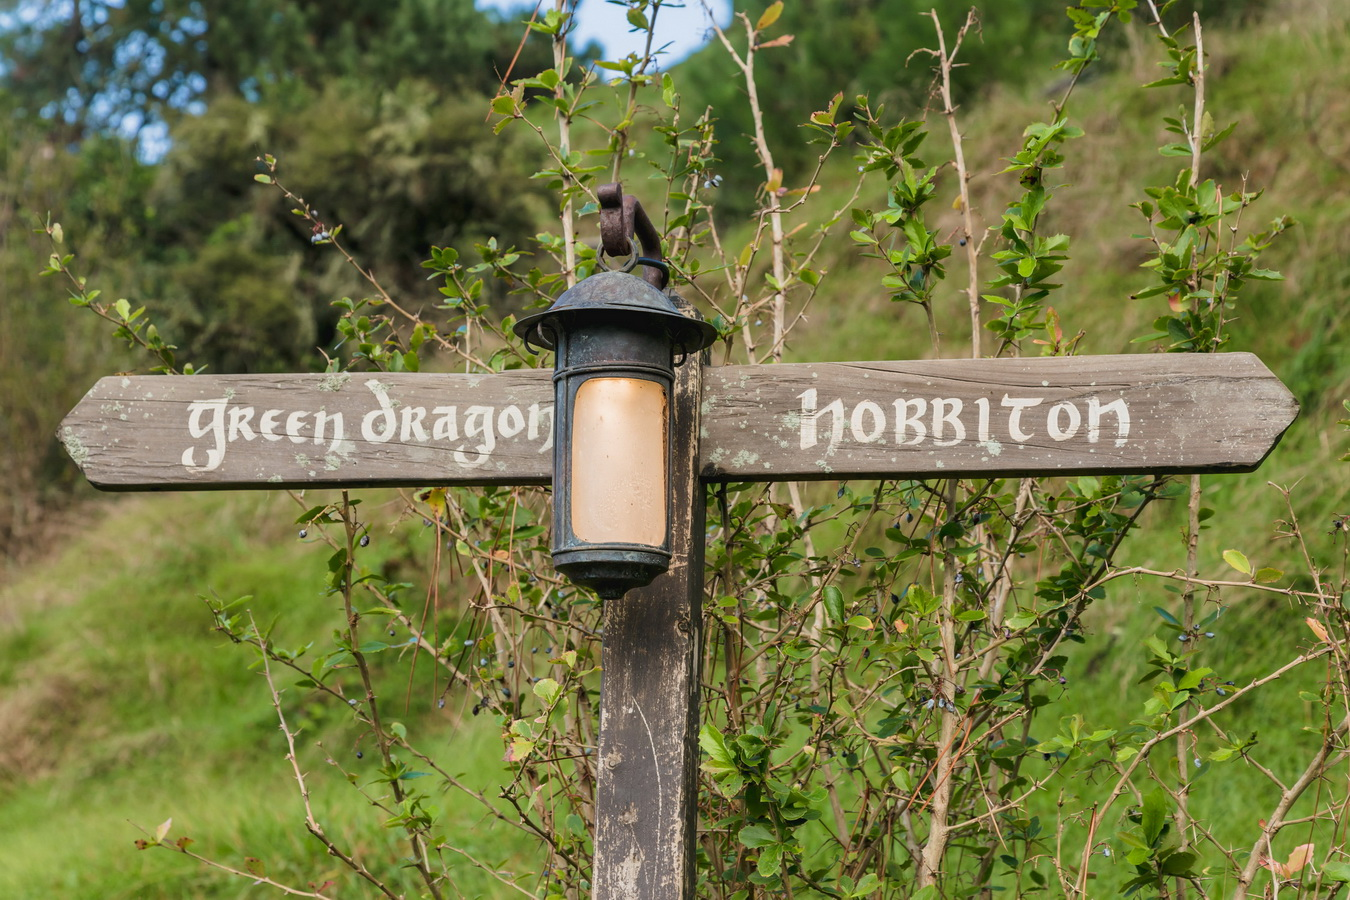 way sign,The Hobbiton, The Shire,Хоббитшир, Удел, Хоббитания, Заселье, Край,Matamata, North Island ,New Zealand